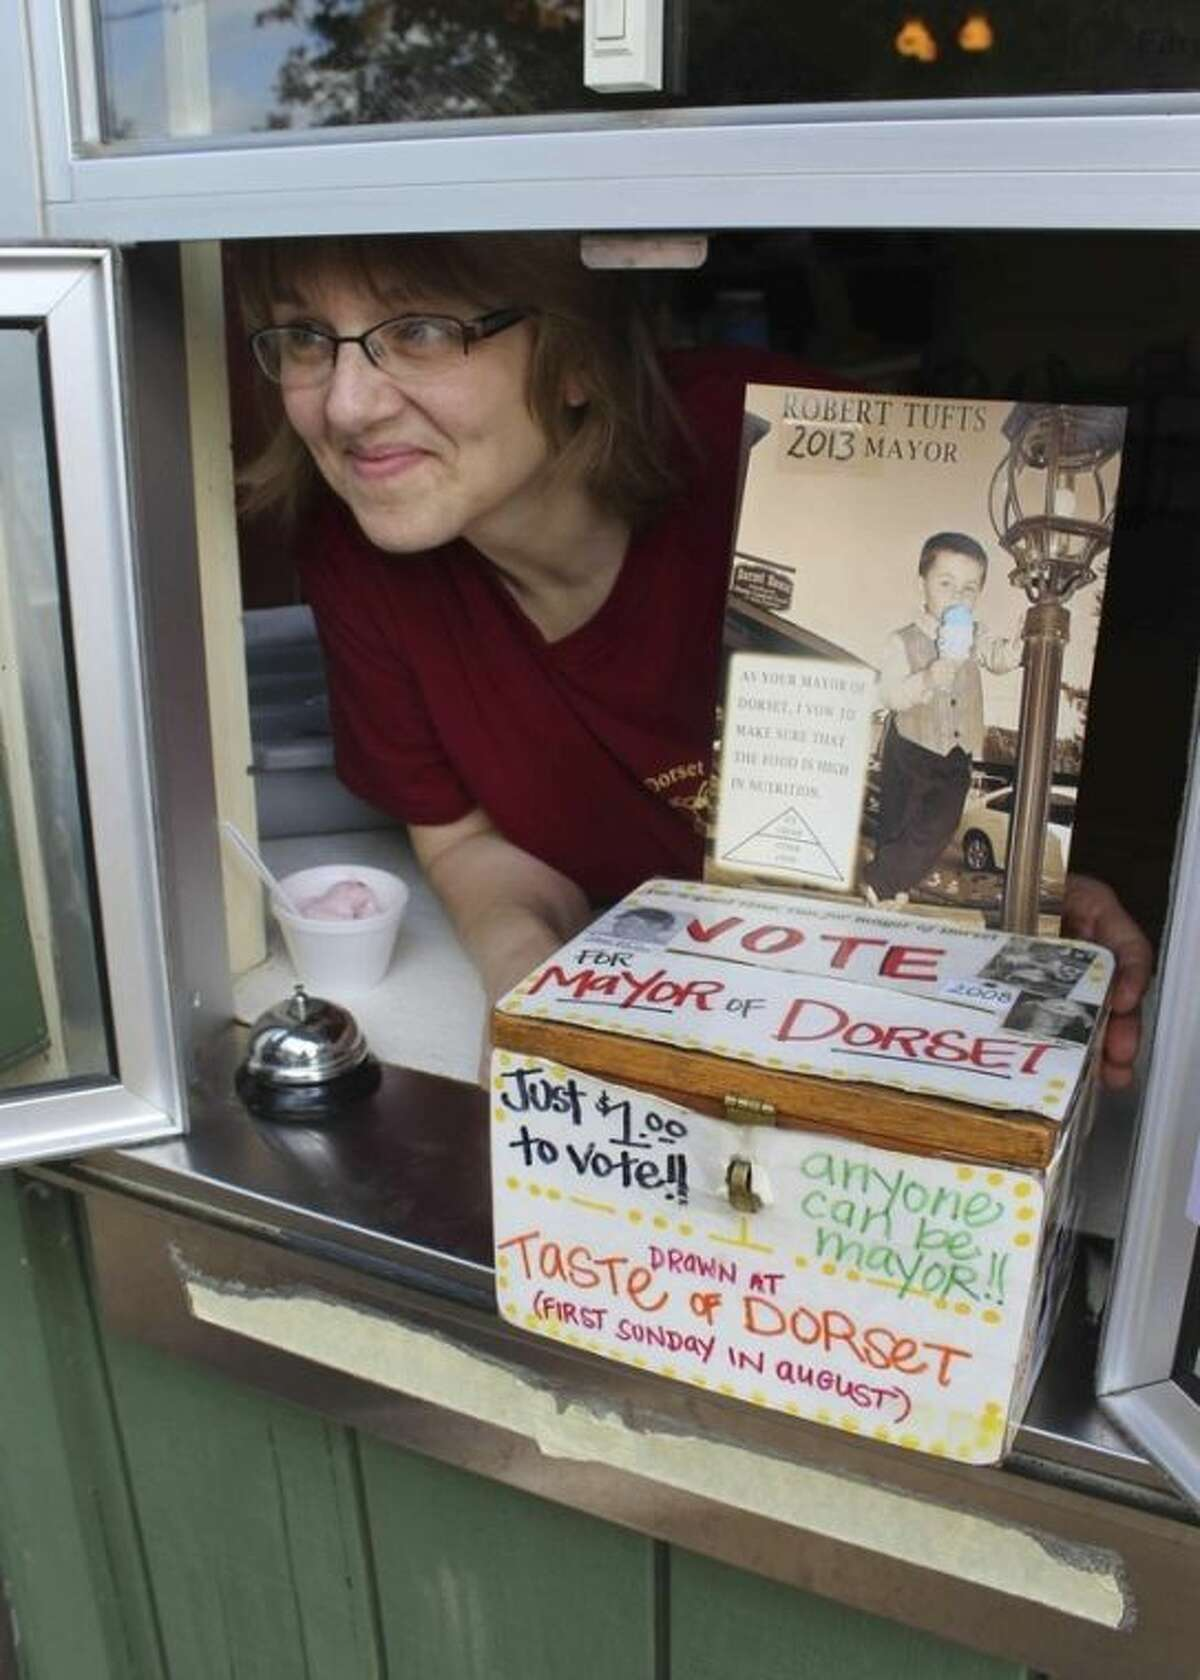 In this photo made Wednesday, June 26, 2013 in Dorset , Minn., Jeannette Dudley, co-owner of Dorset House Family Restaurant, poses by the ballot box at the window of her restaurant in the Dorset mayor race. Bobby Tufts, the 4-year-old mayor, is running for re-election. Bobby was only 3 when he won election last year as mayor of Dorset (population 22 to 28, depending on whether the minister and his family are in town). Dorset, which bills itself as the Restaurant Capital of the World, has no formal city government. (AP Photo/Jeff Baenen)